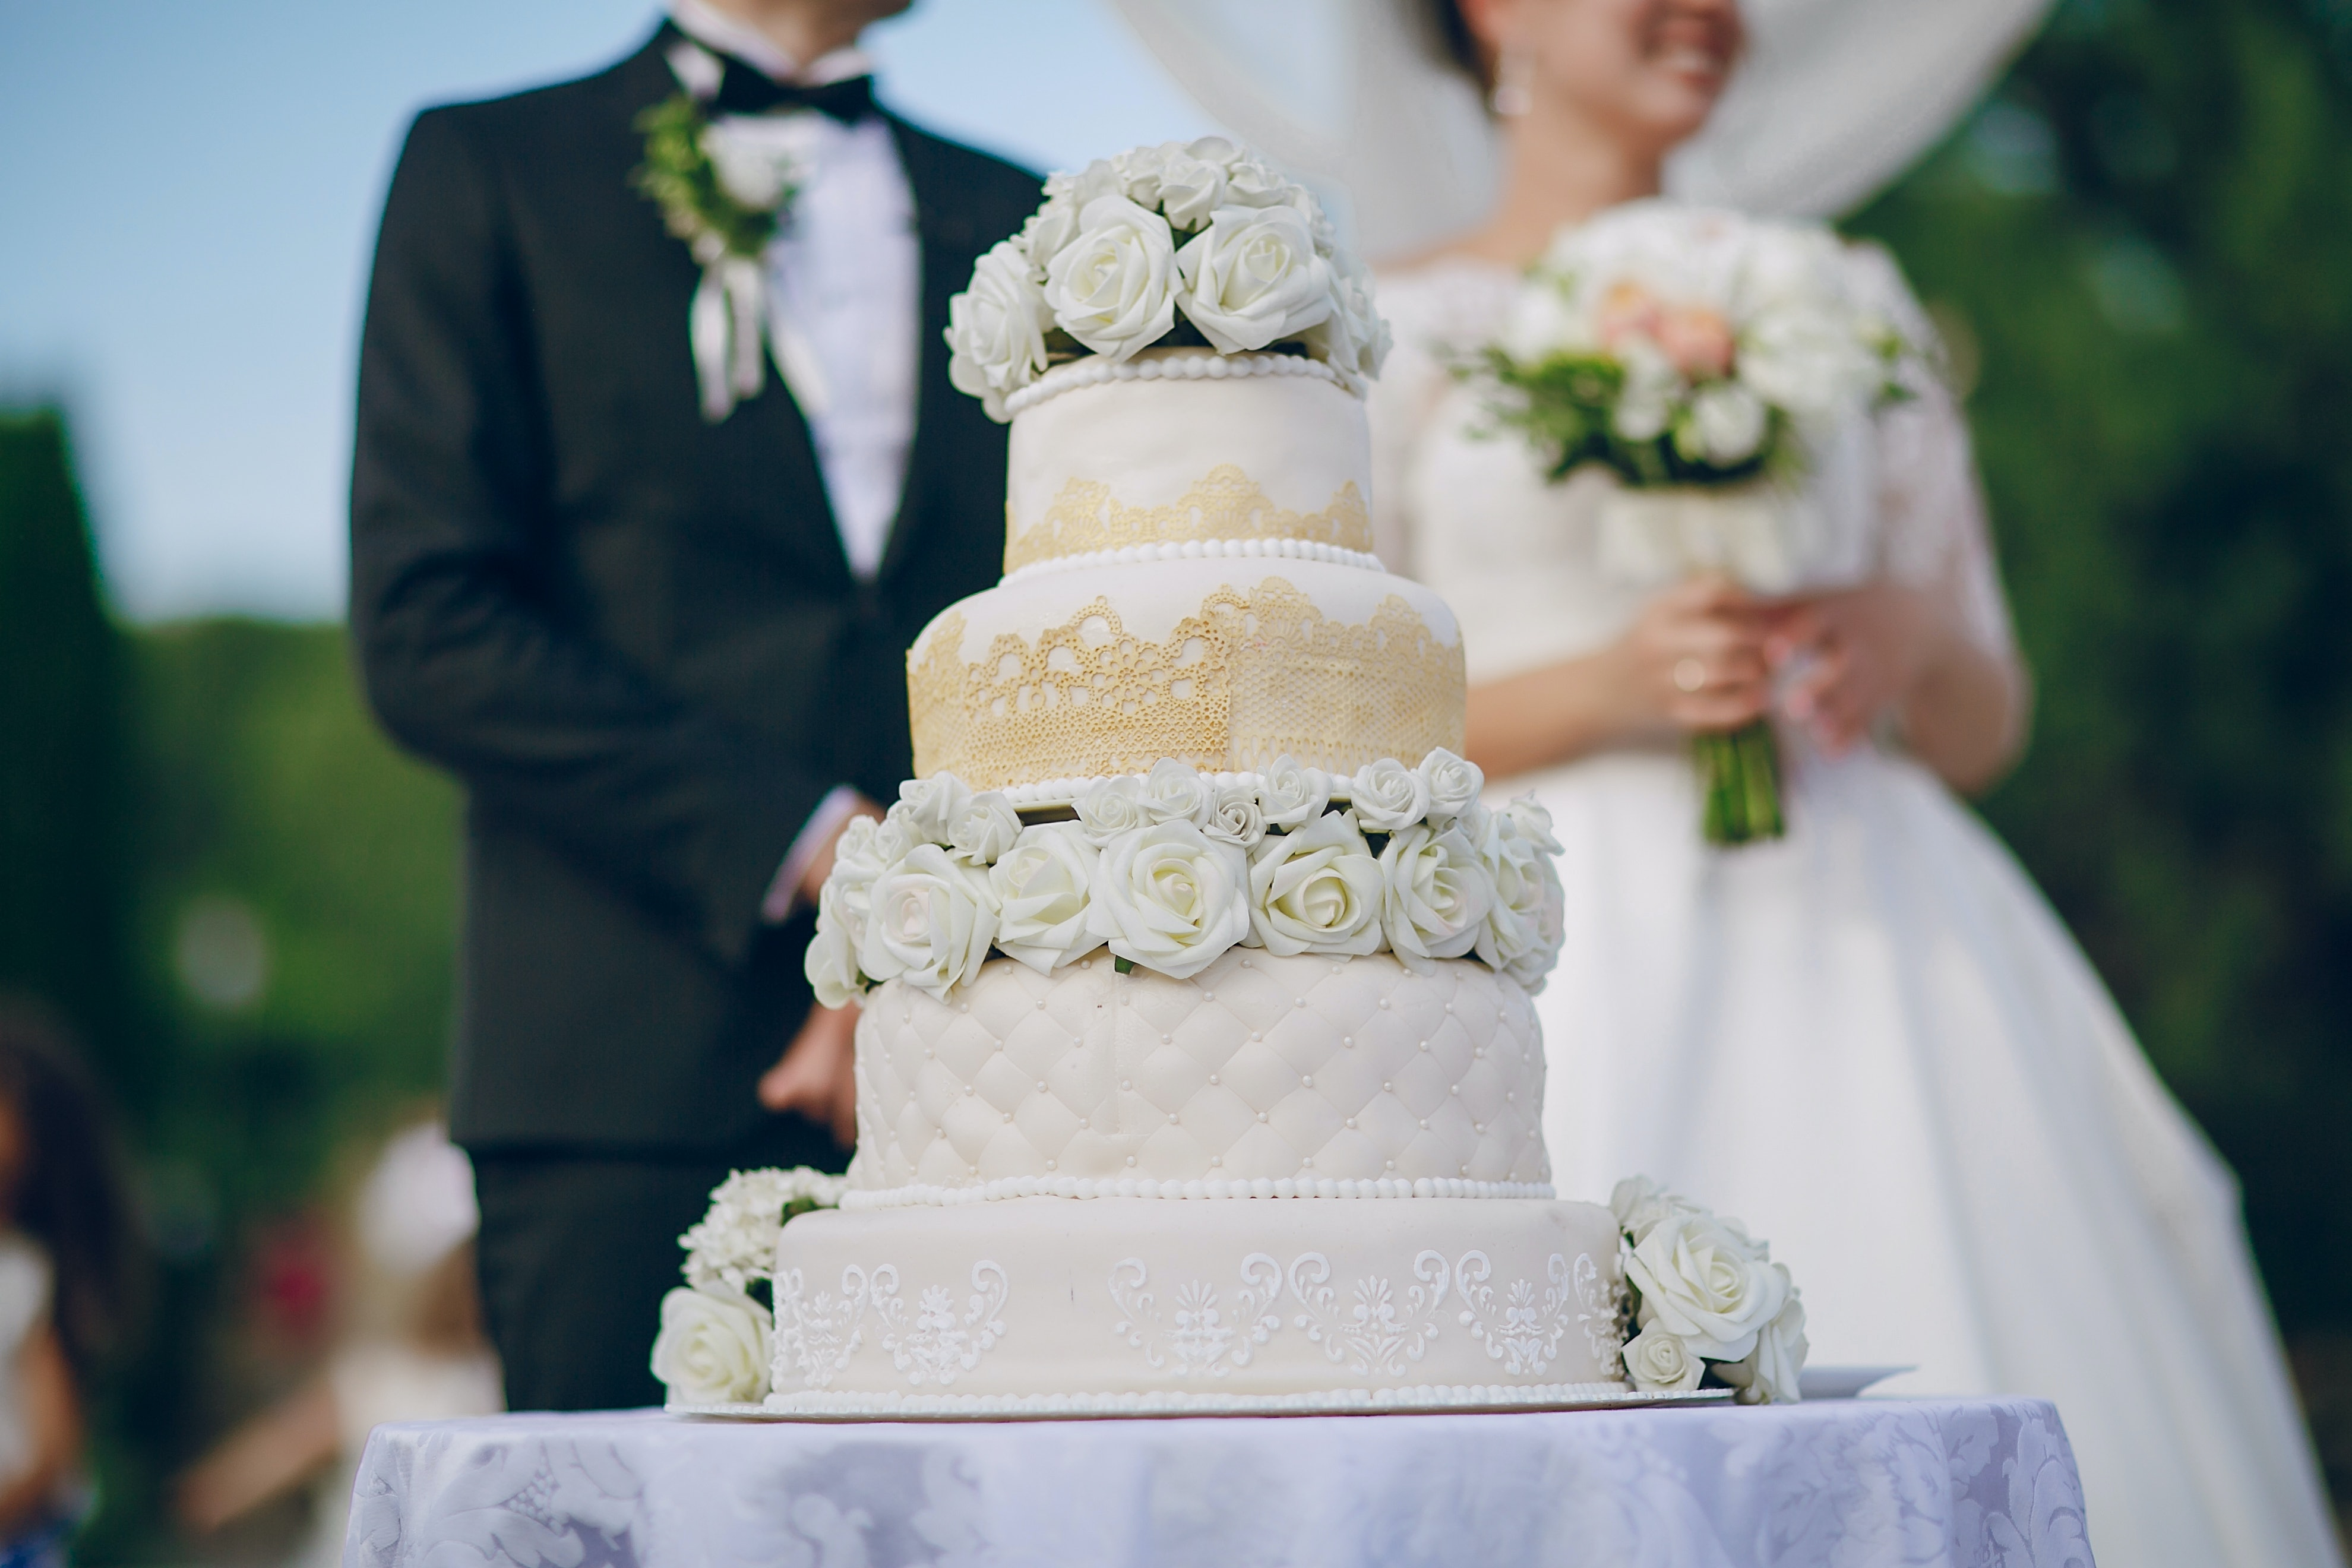 The Best Type Of Wedding Cake For Your Special Day, Based On